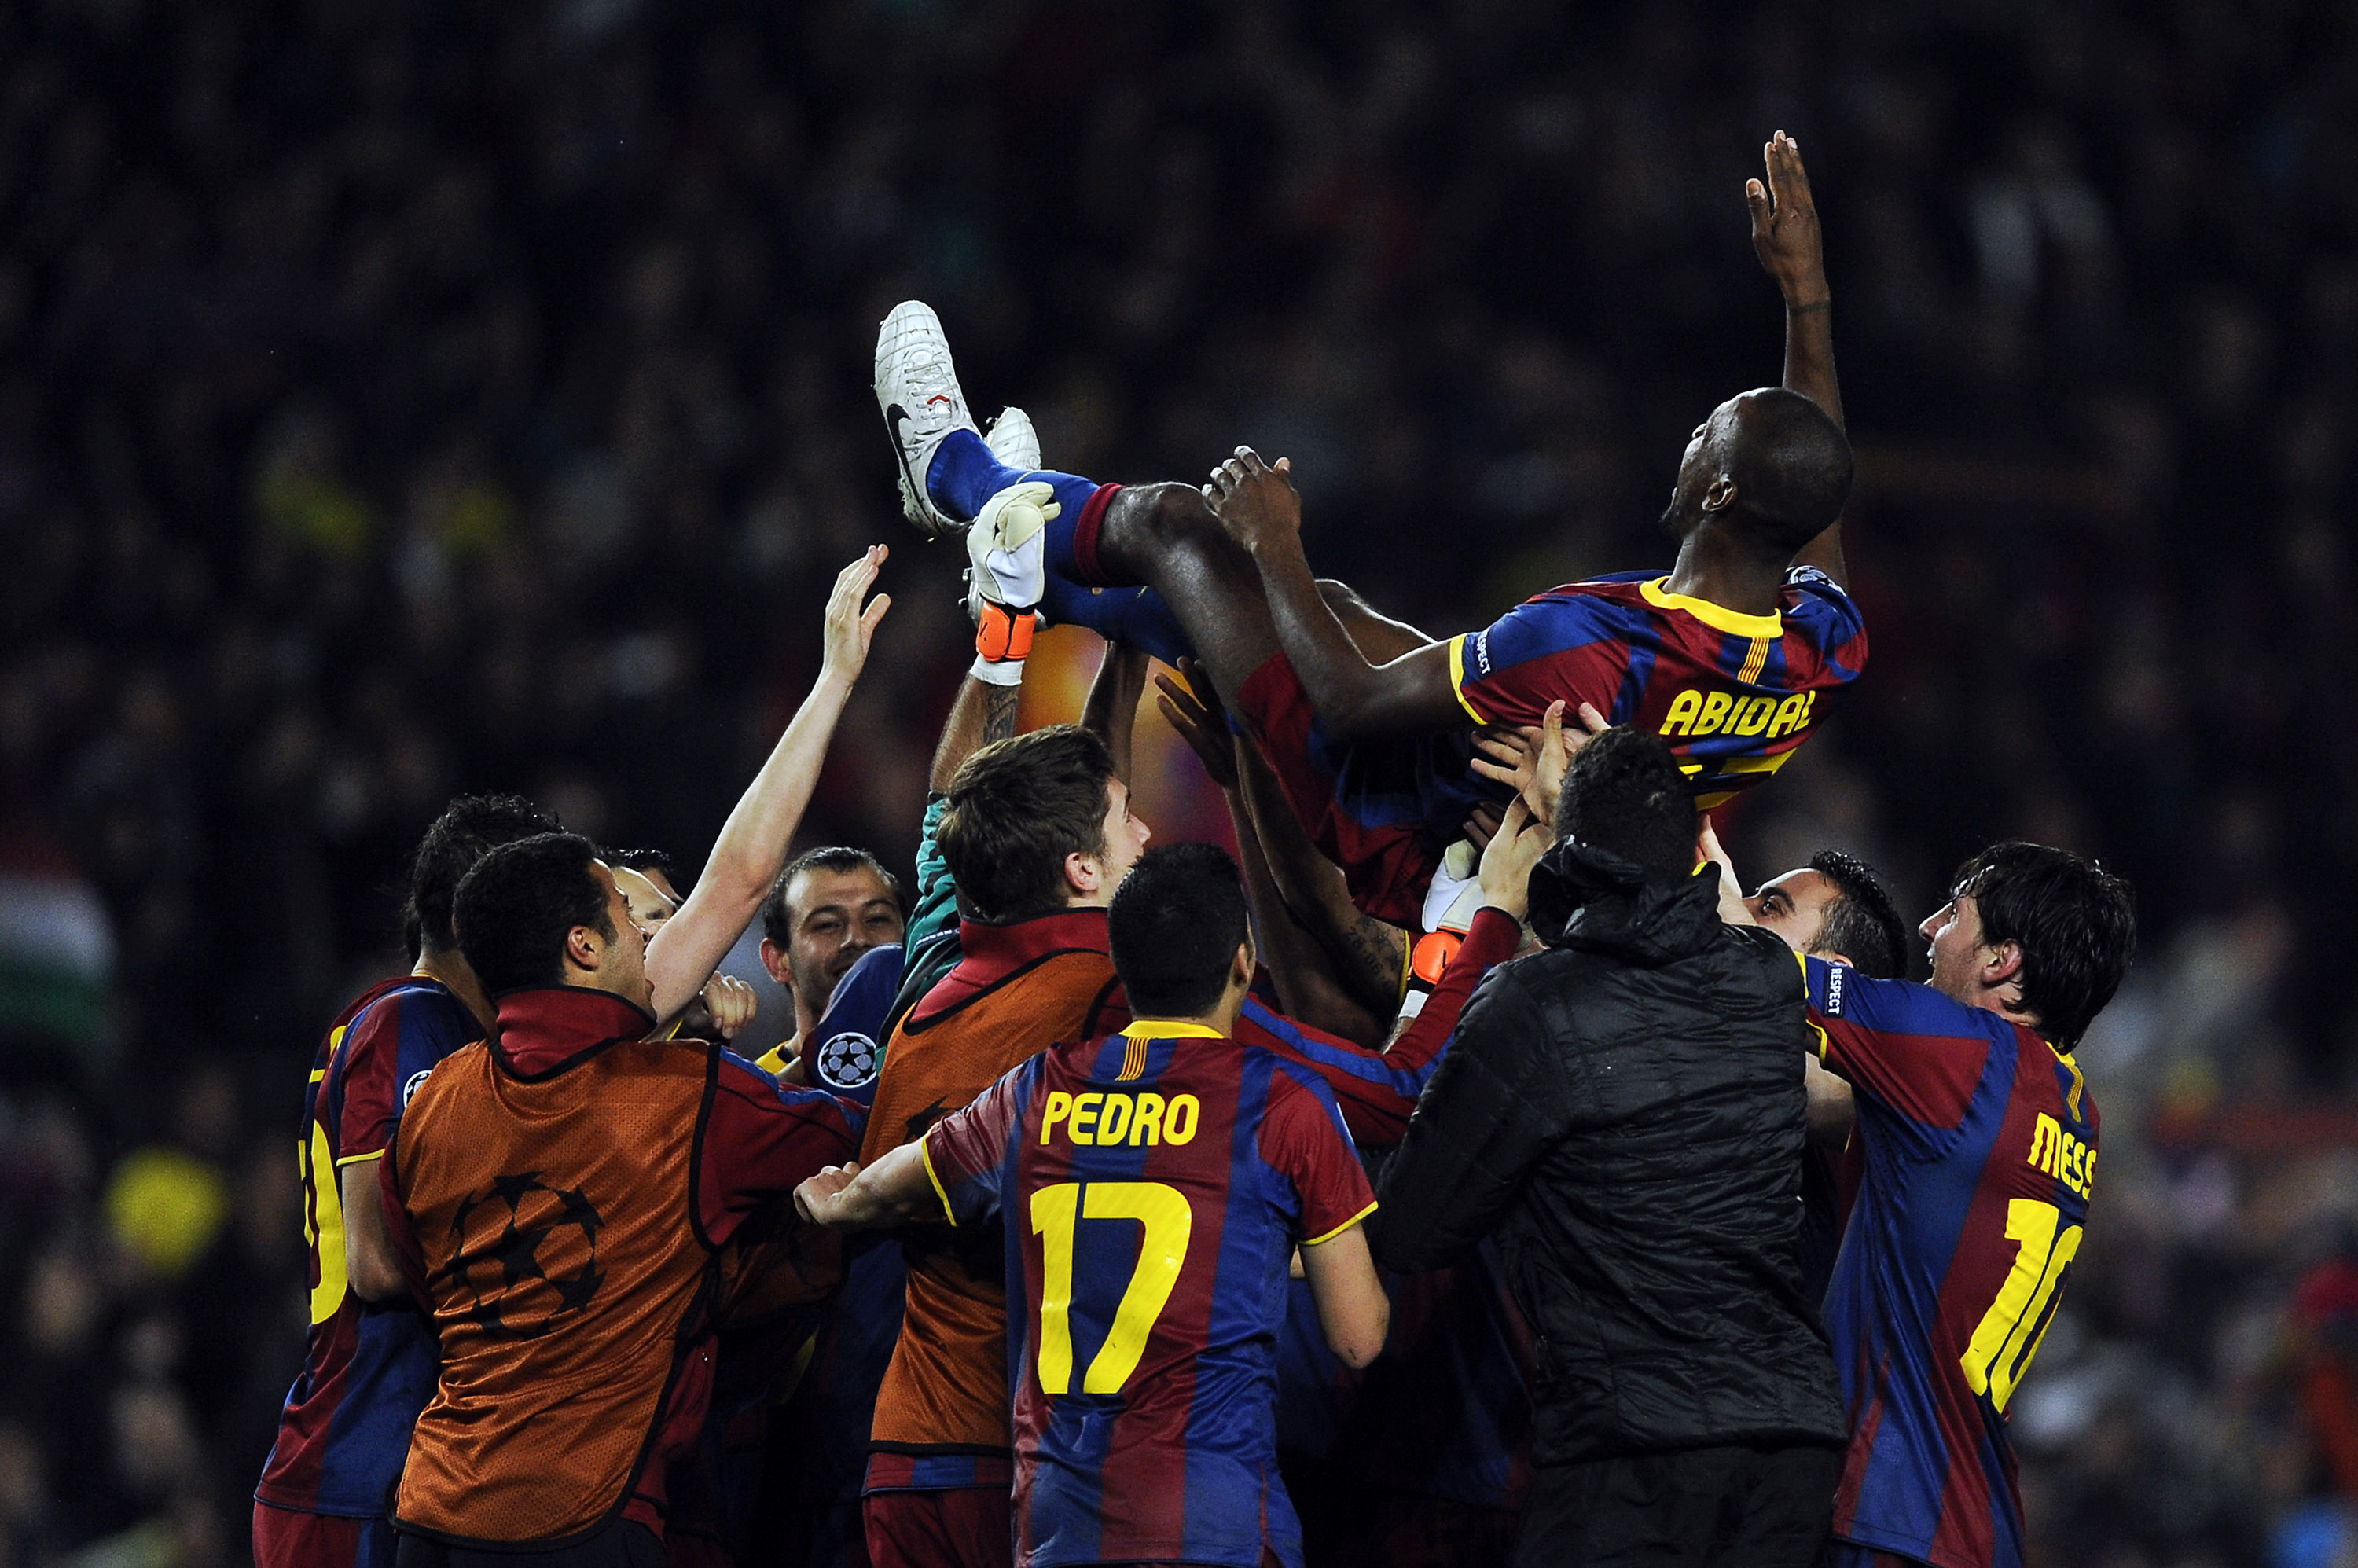 BARCELONA, SPAIN - MAY 03:  FC Barcelona players toss teammate Eric Abidal up in the air after defeating Real Madrid in the UEFA Champions League Semi Final second leg match between Barcelona and Real Madrid, at the Camp Nou on May 3, 2011 in Barcelona, S